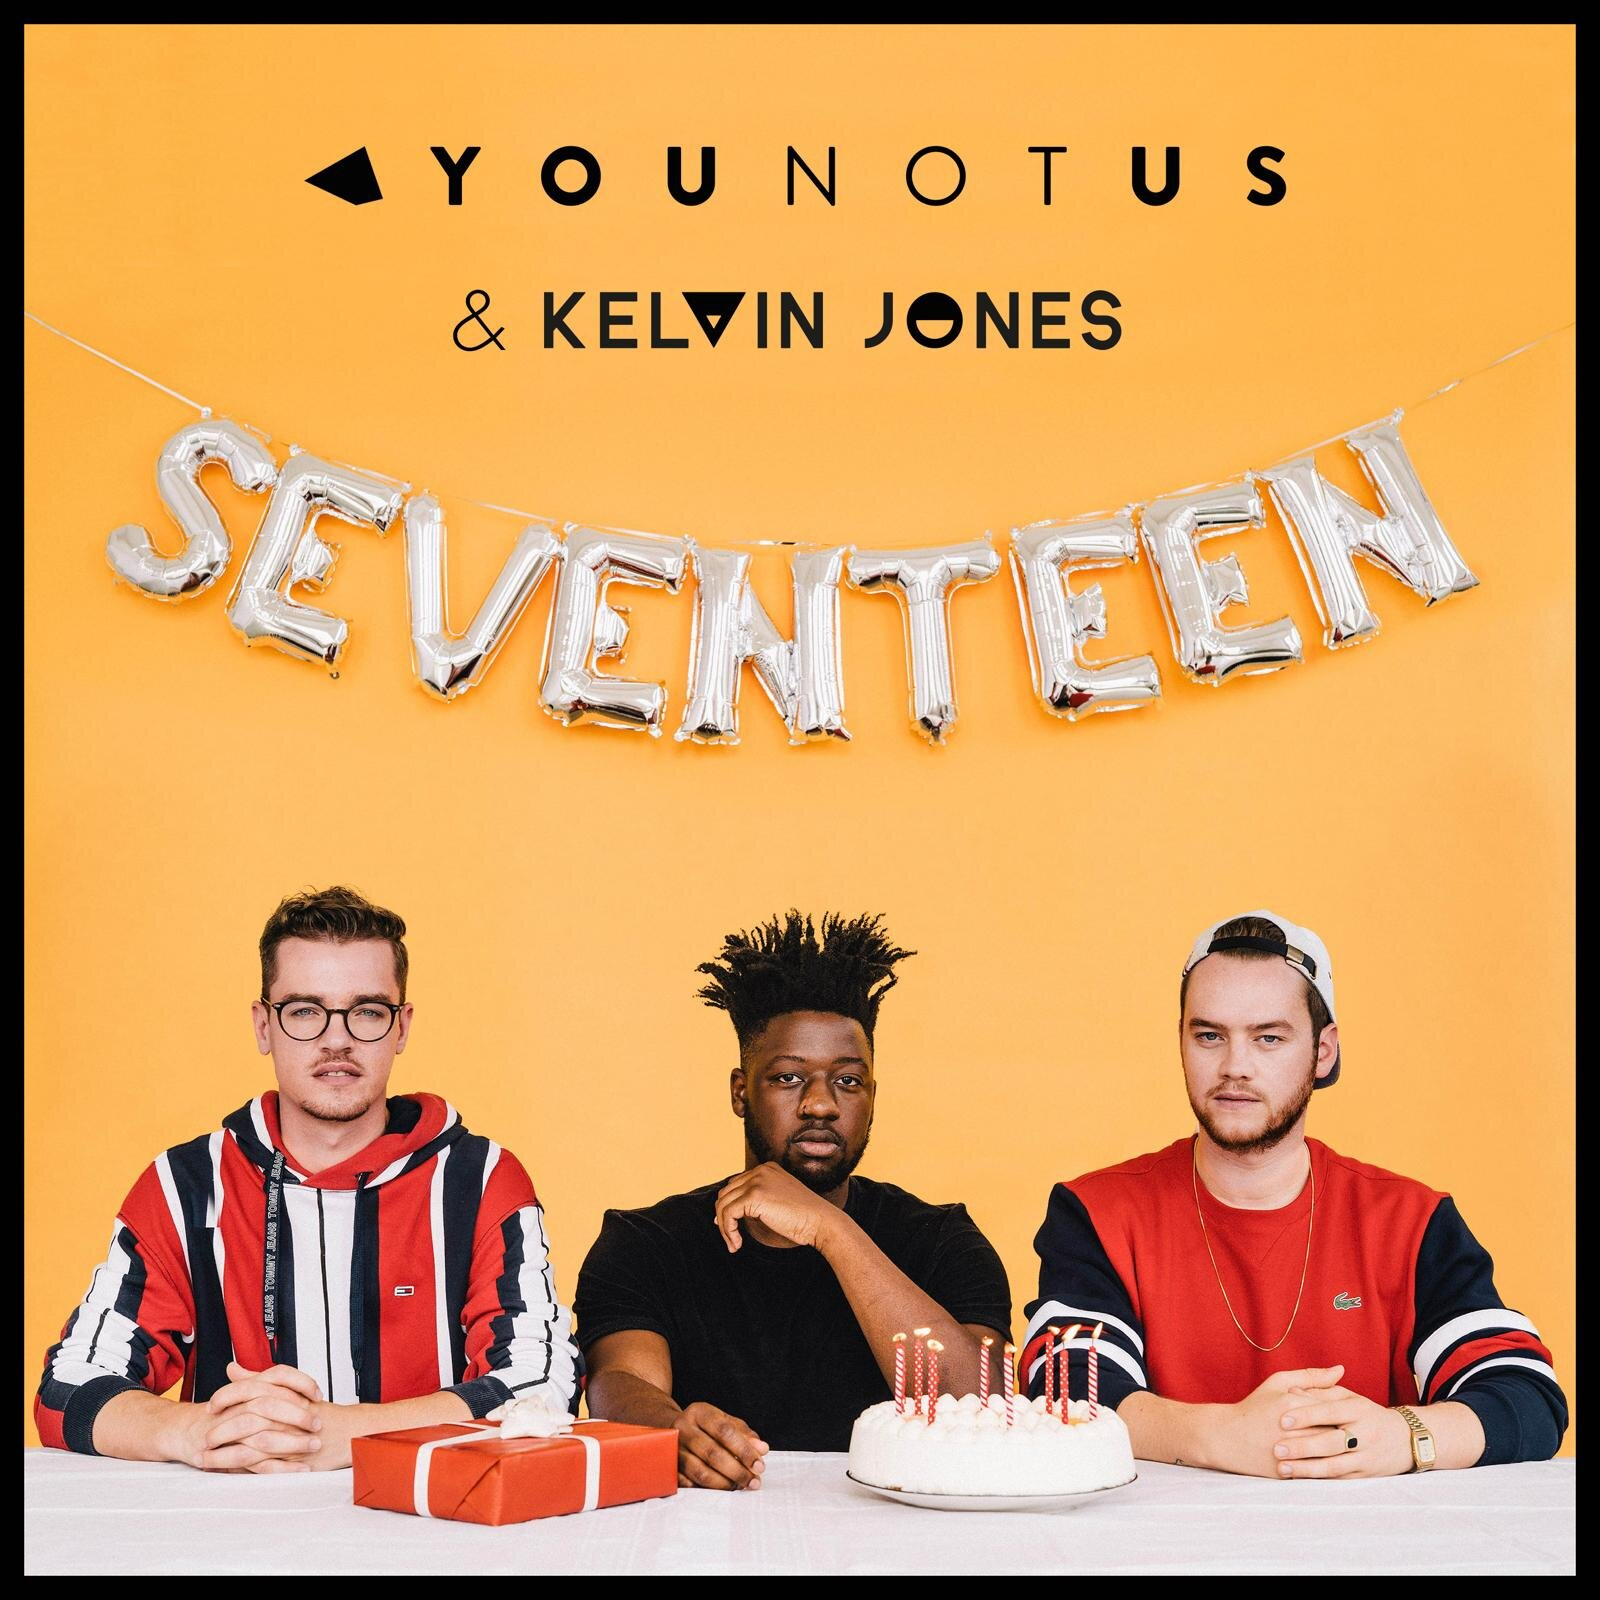 SEVENTEEN - Kelvin joins together with duo Younotus for the second time after their first success with Only Thing We Know!